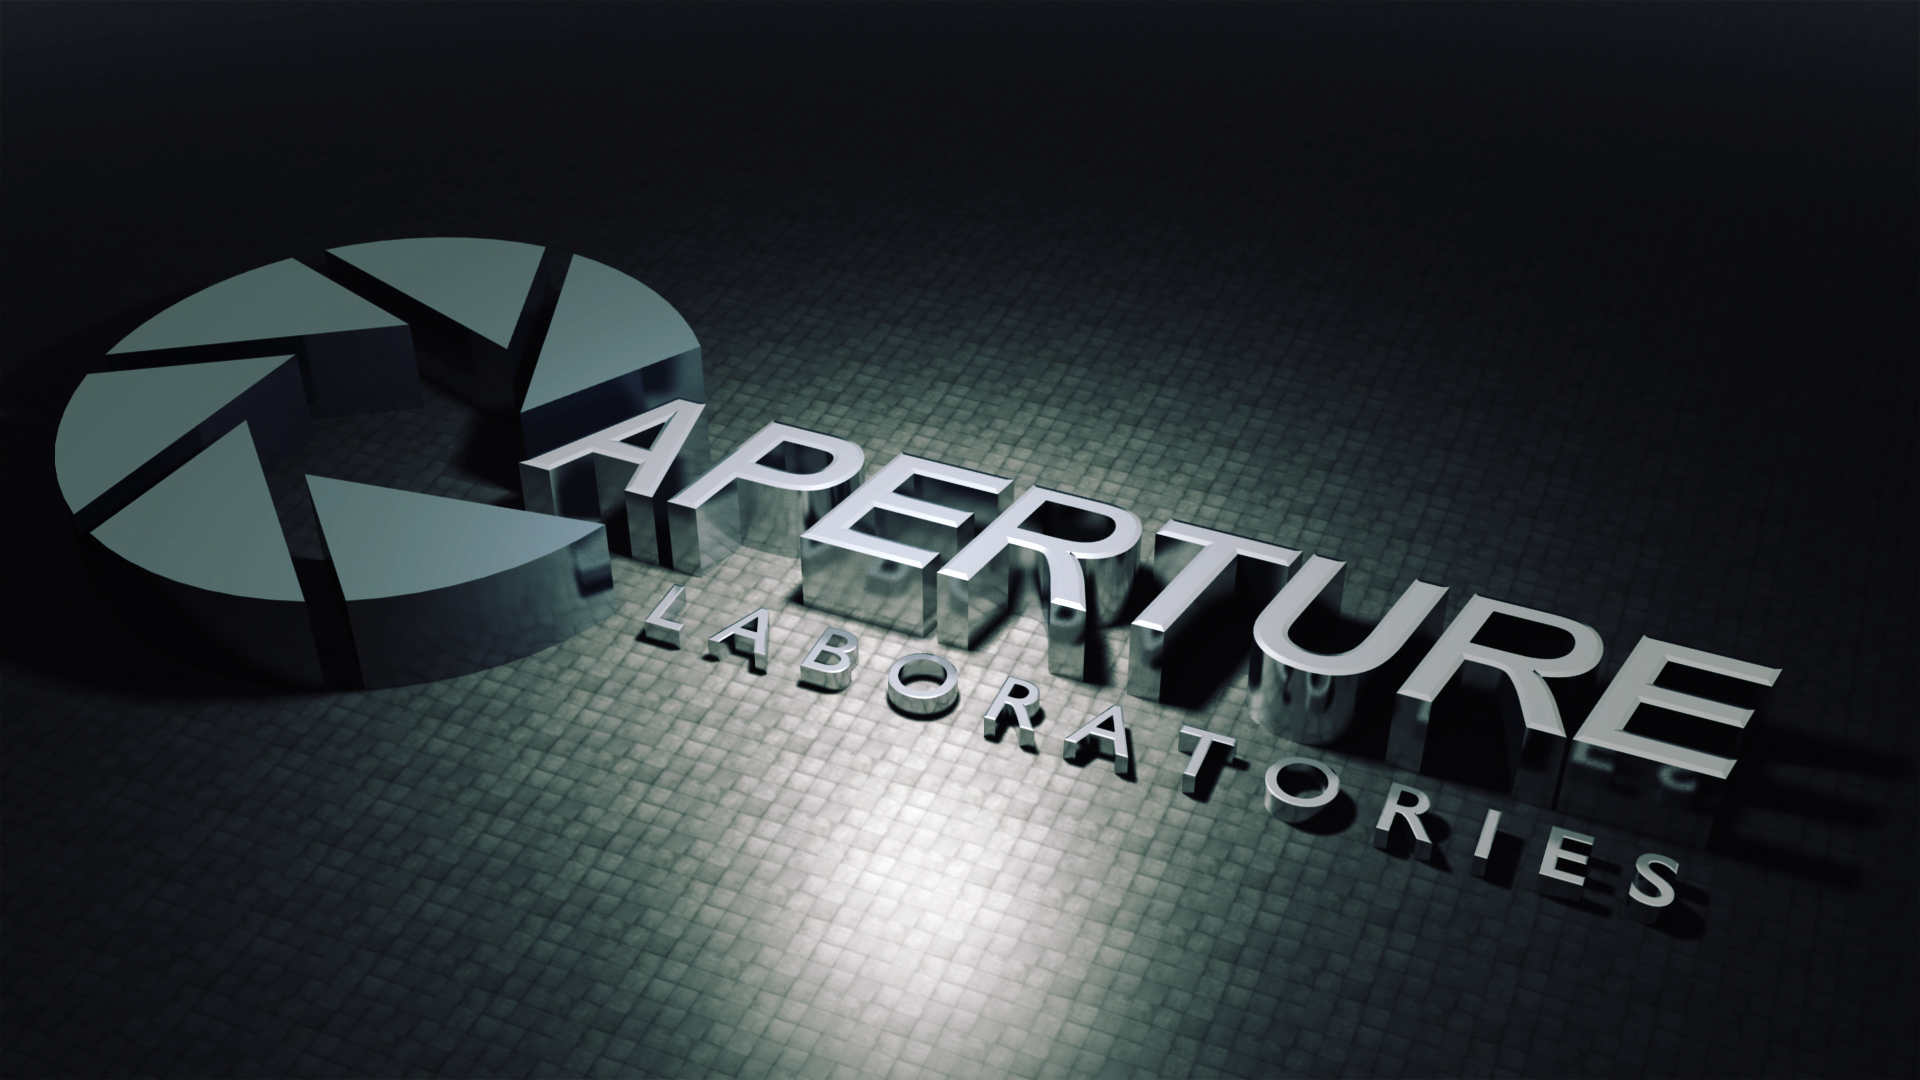 Aperture Laboratory Hd Wallpapers Portal Pictures 1920x1080